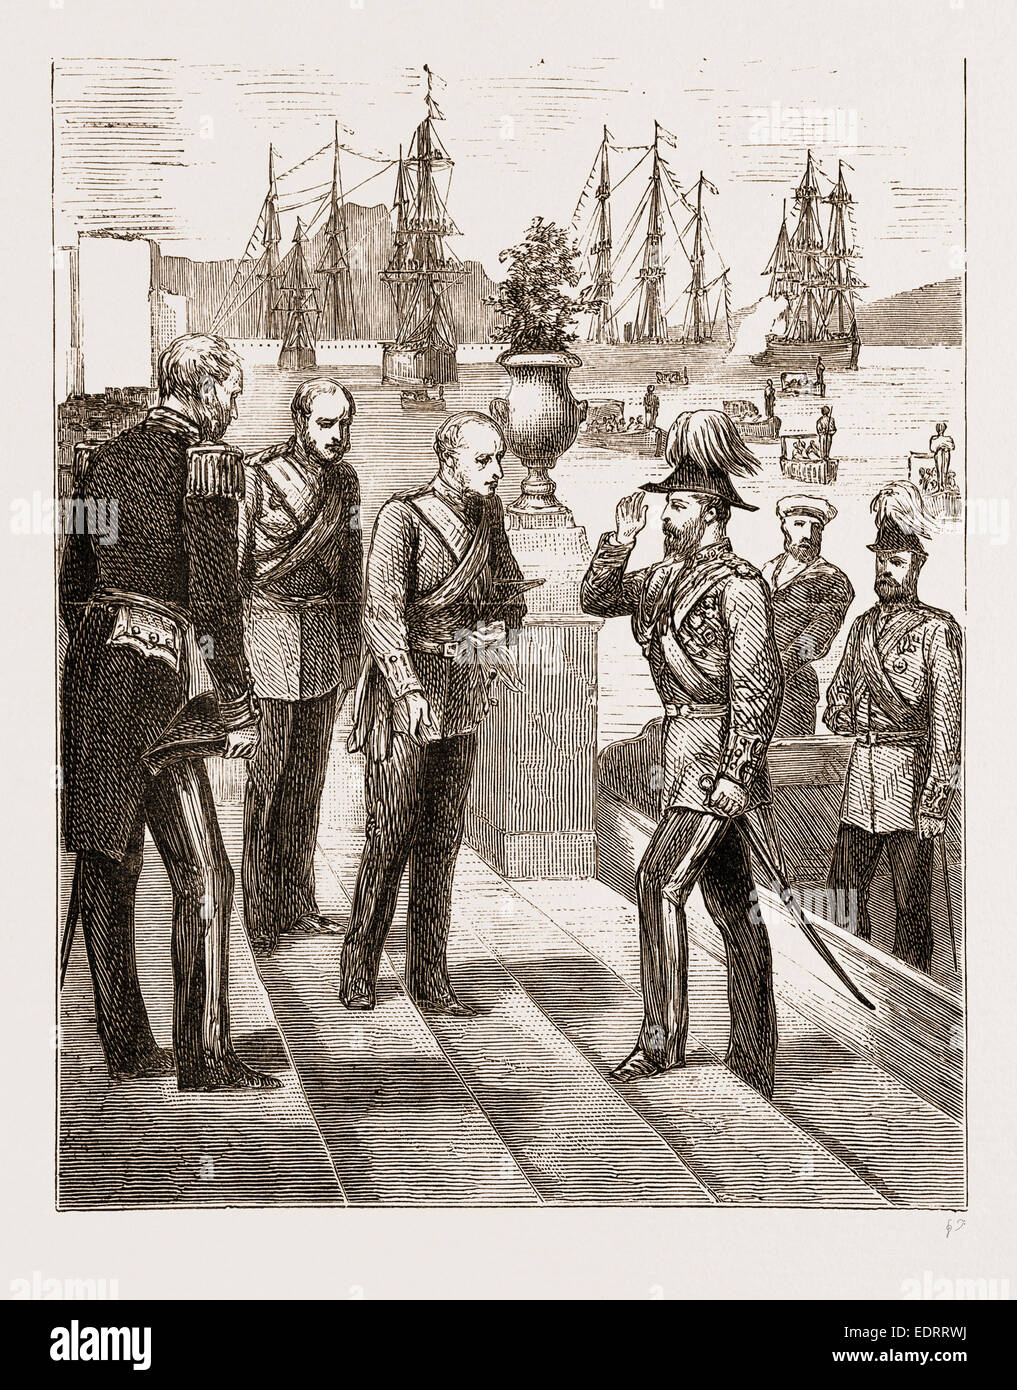 THE PRINCE OF WALES AT MALTA, 1876: RECEPTION OF THE PRINCE BY GENERAL SIR C.T. VAN STRAUBENZEE, GOVERNOR OF THE - Stock Image